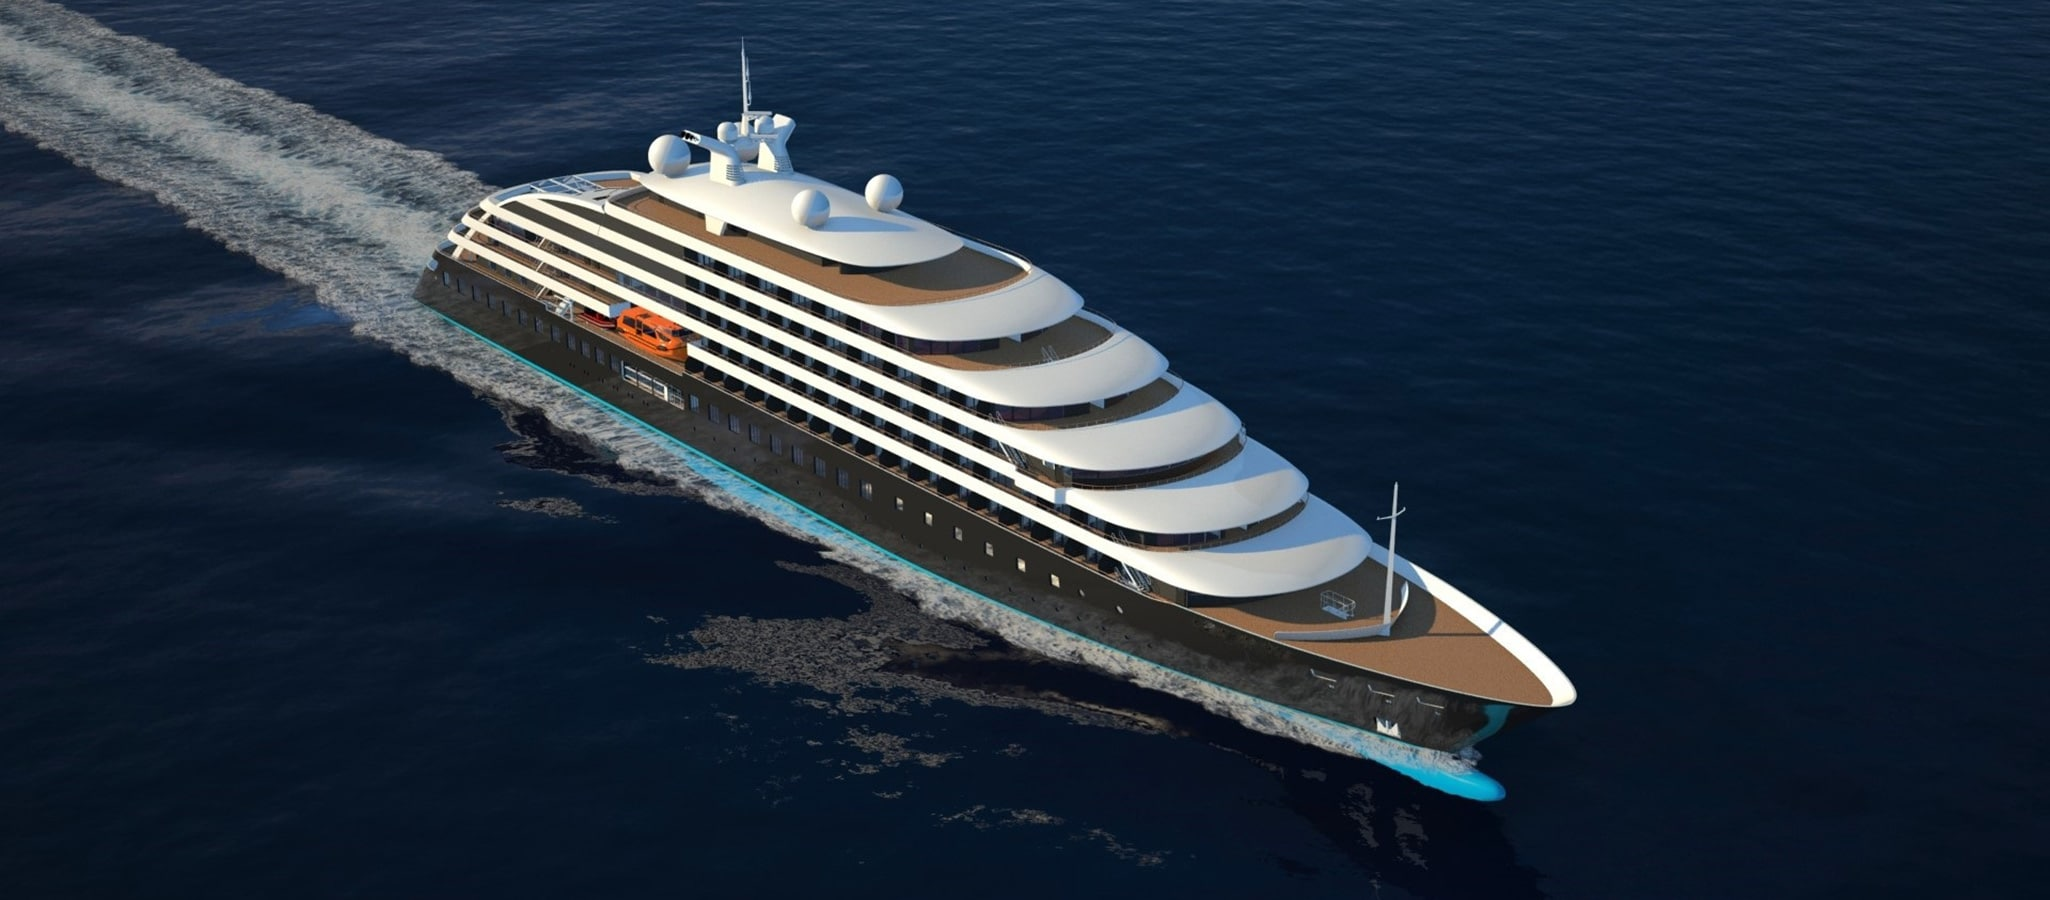 Among the cruise ships for up to 400 passengers, the premium yachts are among the most cutting-edge. Furnished by top designers, they are state of the art in terms of ecology as well. Restaurants, bars, panoramic lounges, outdoor pools and opulent spas – your guests will delight in the cruise with all their senses.